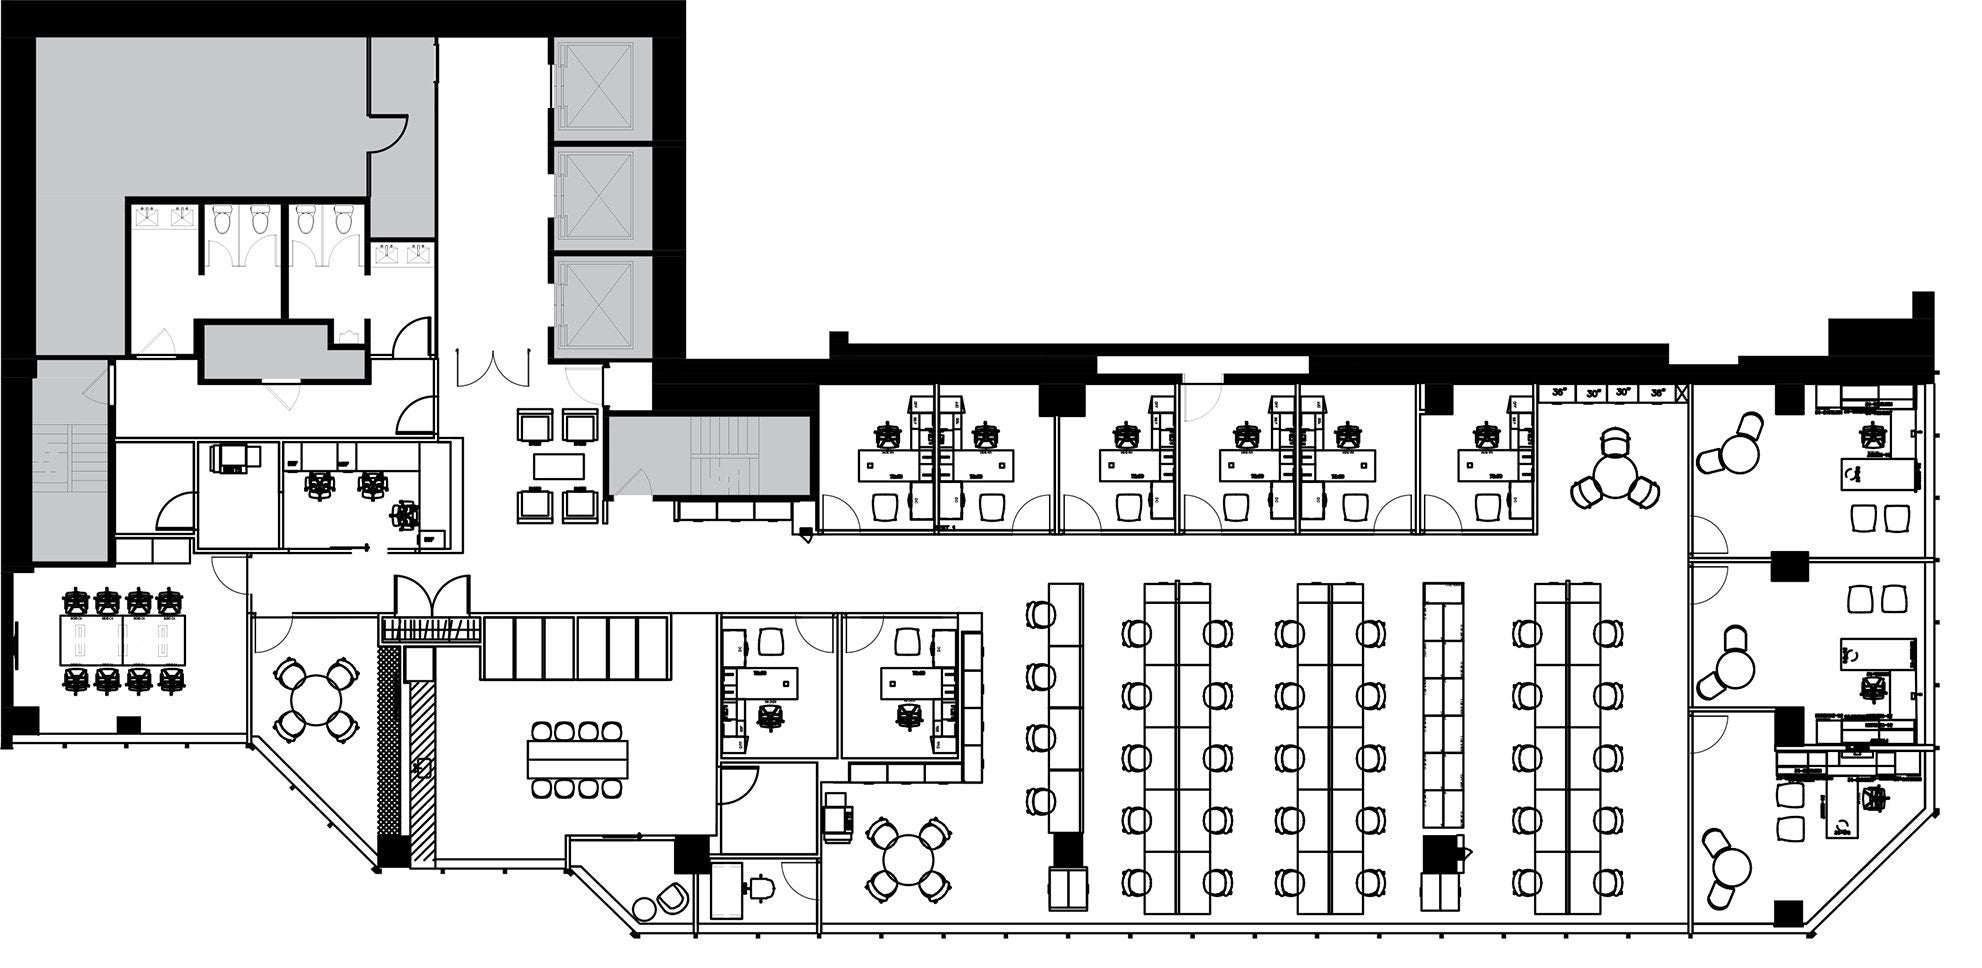 Furniture plan of the client's space